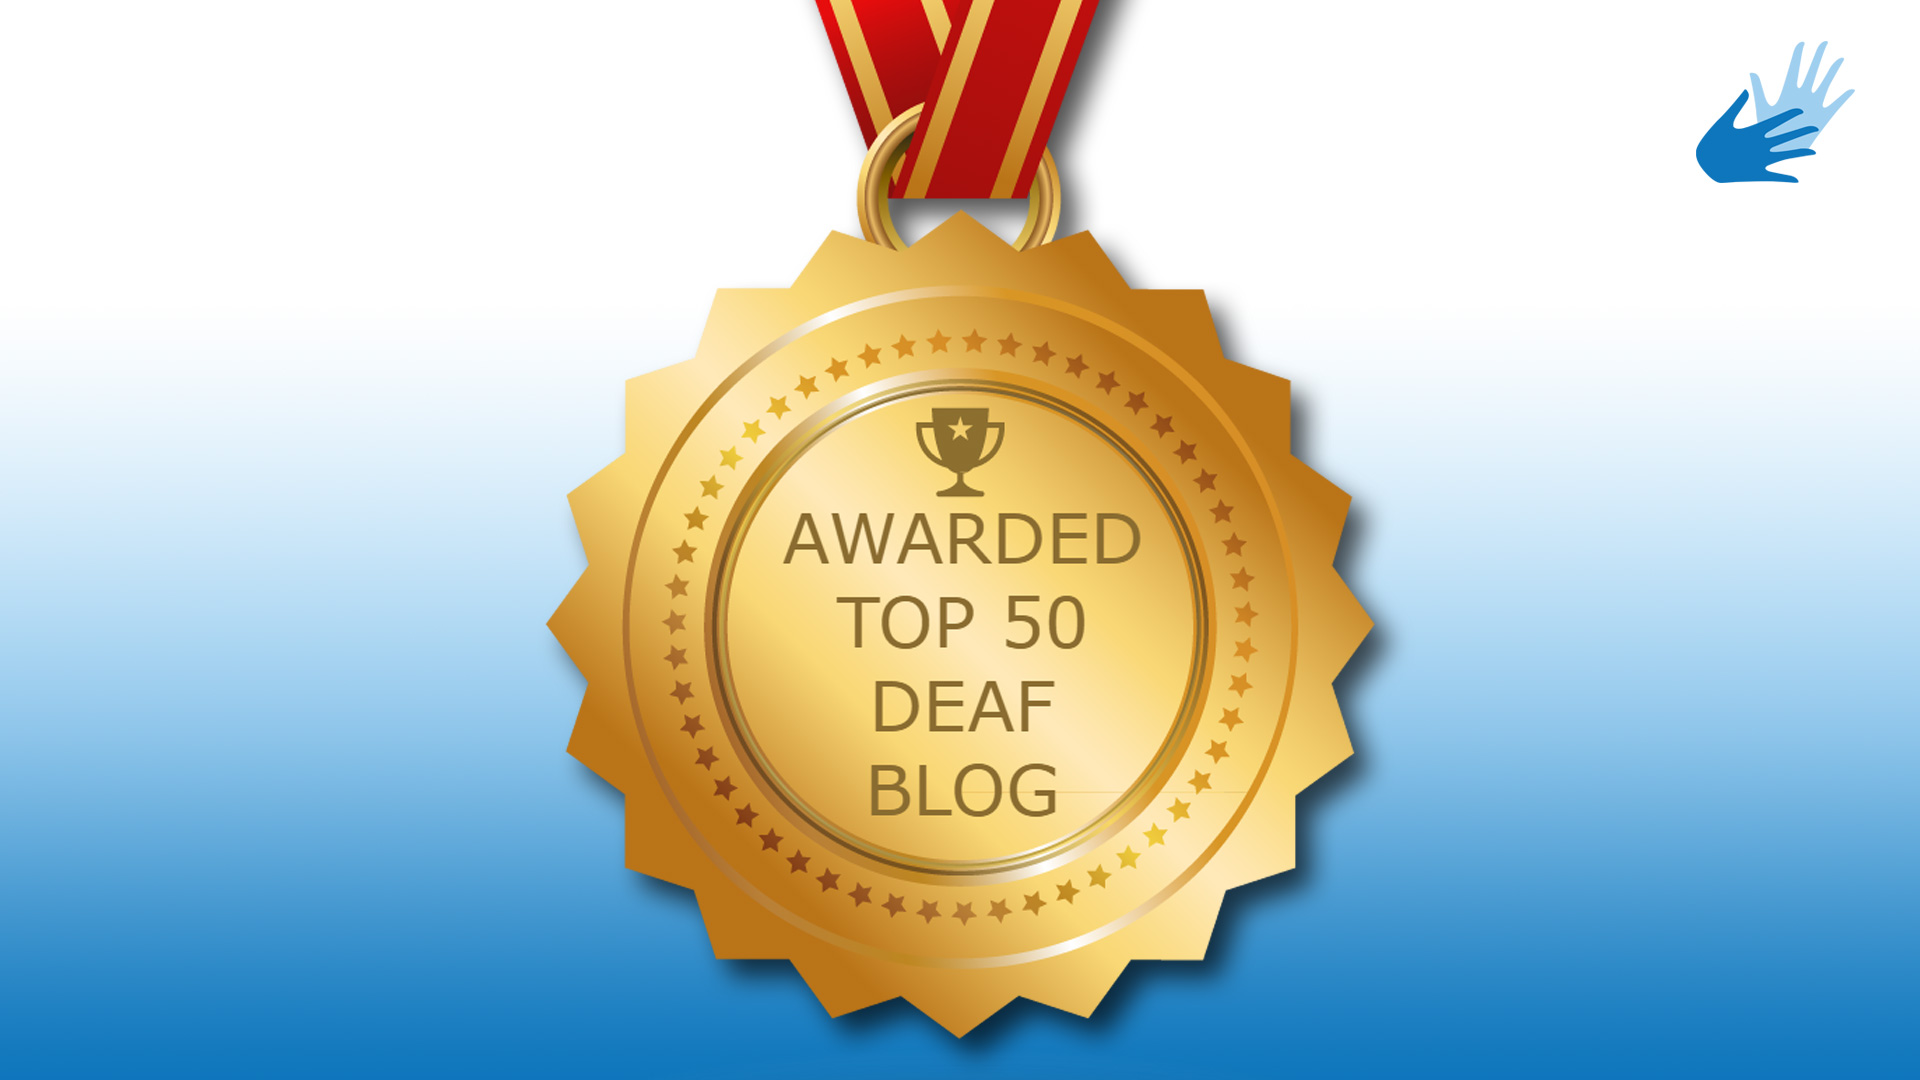 BDN is the Top 50 Deaf Blogs on the web!